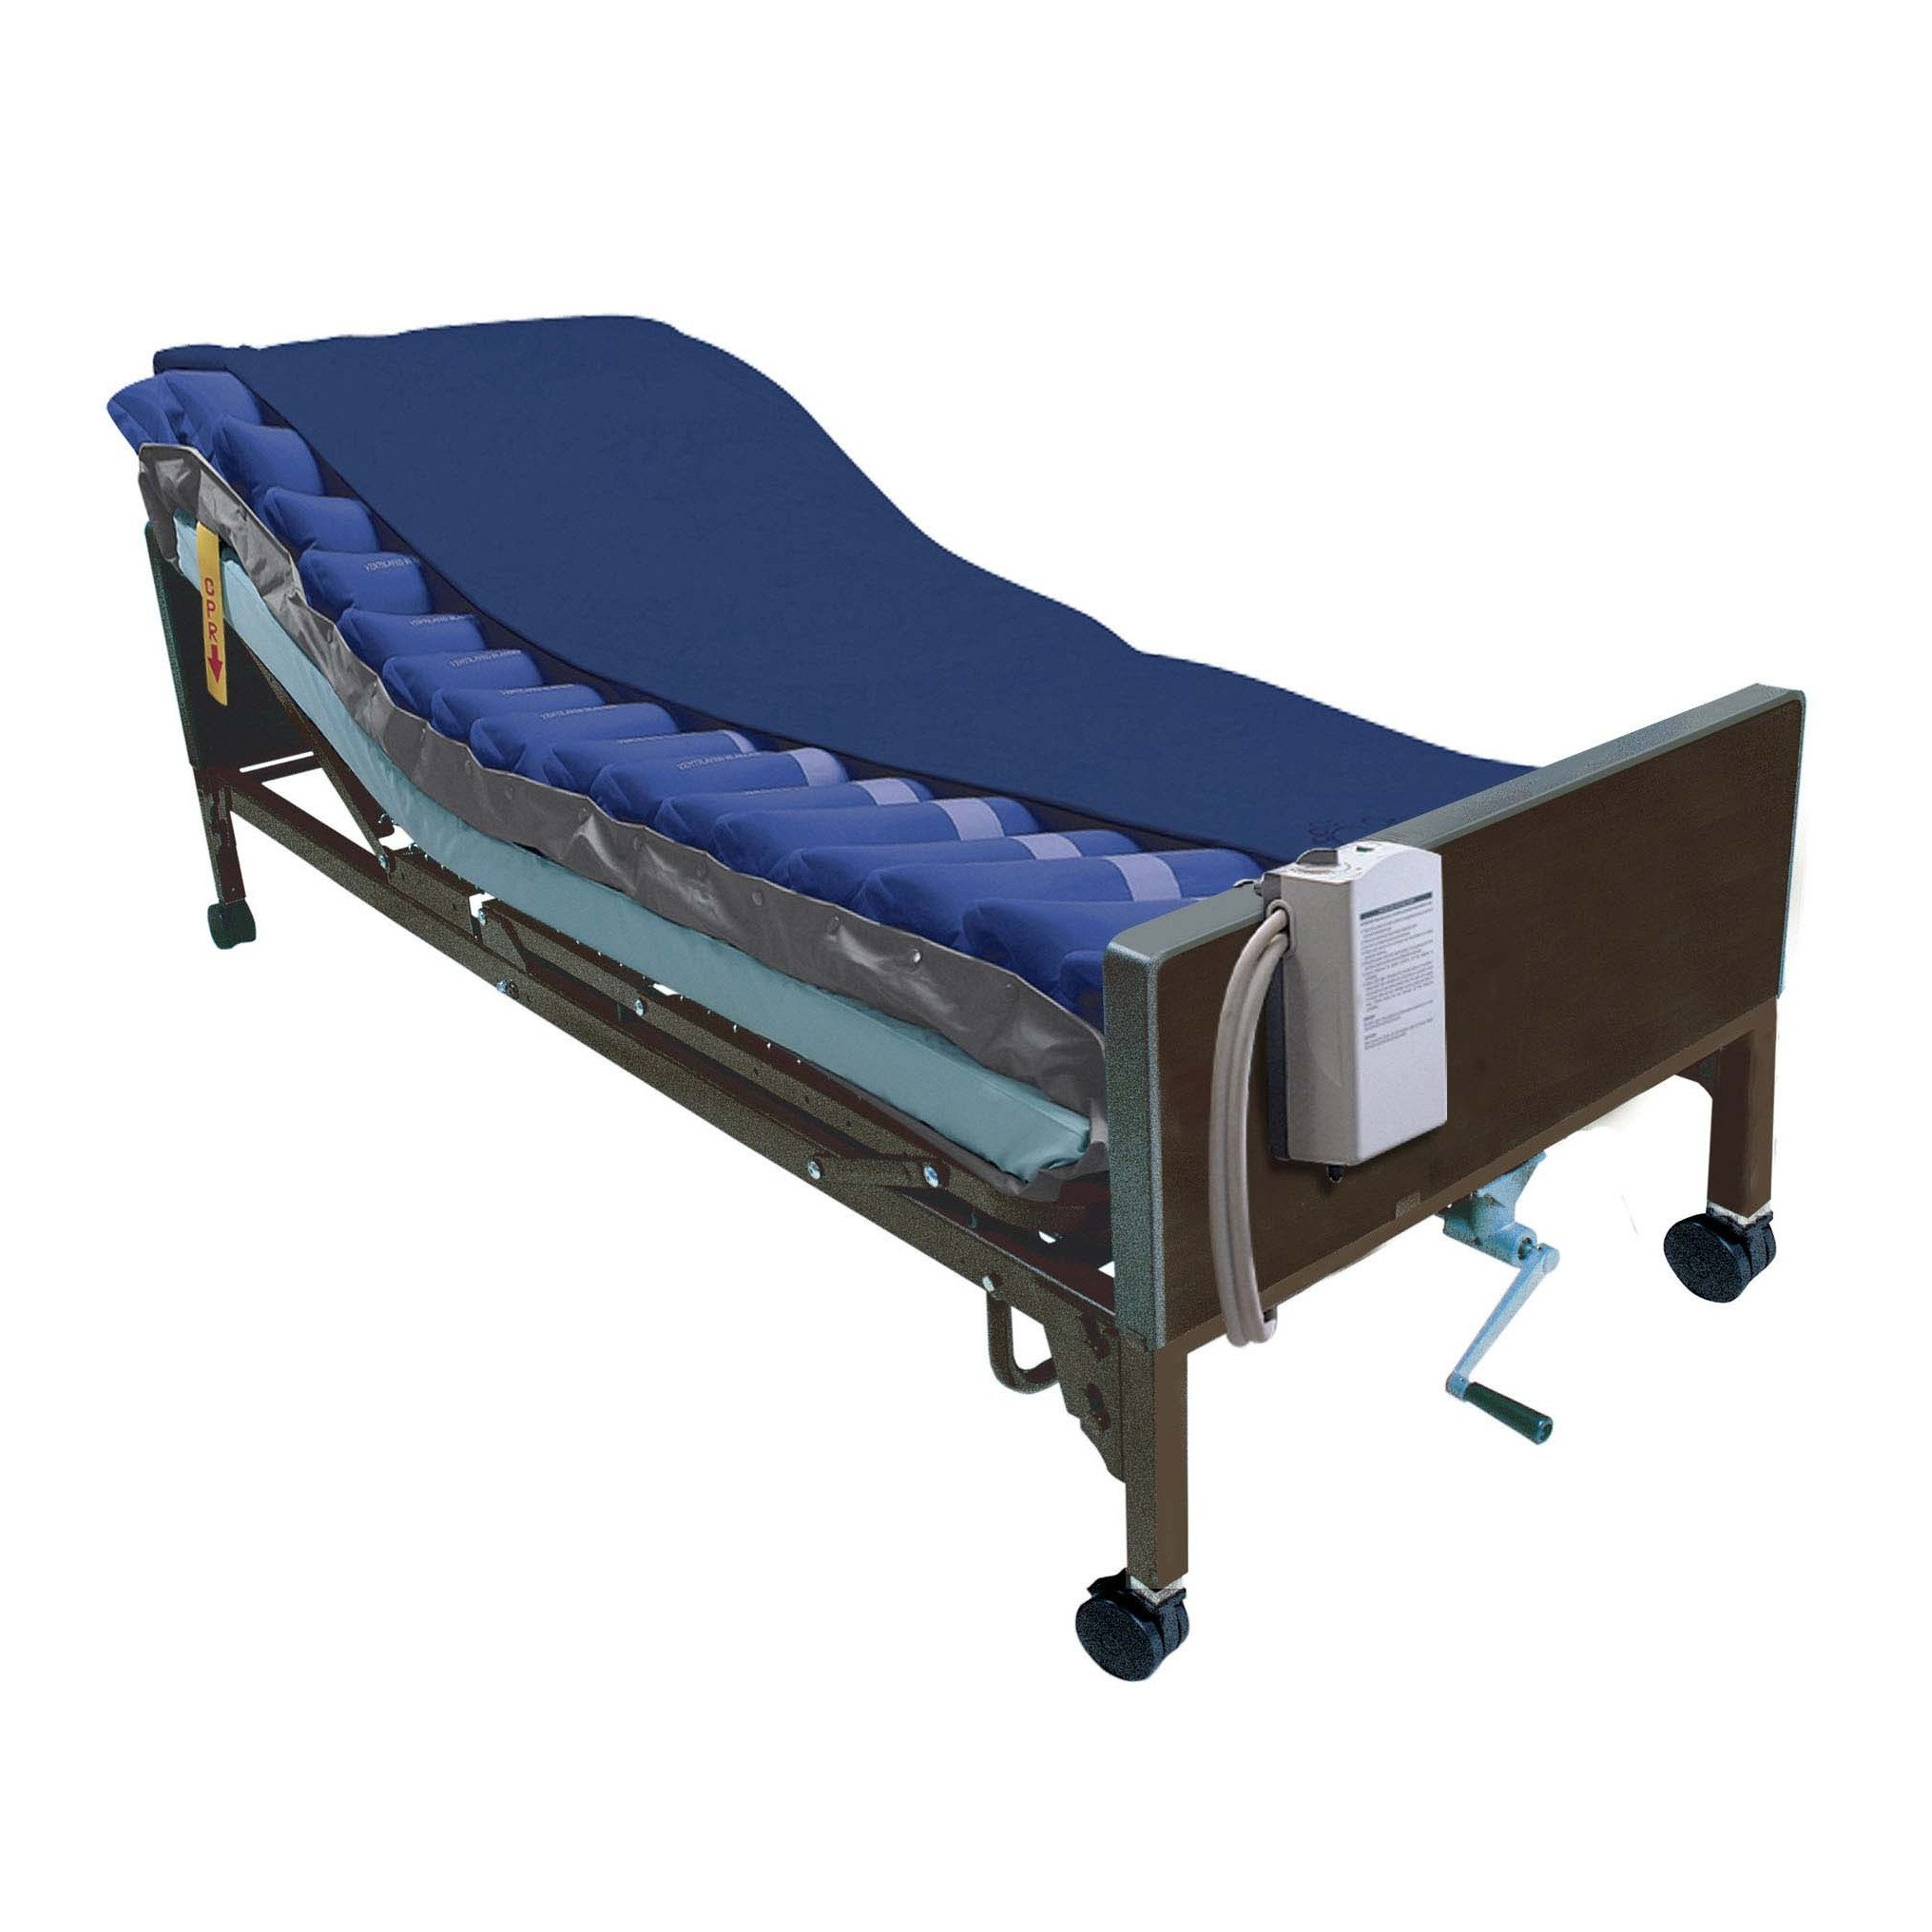 Alternating Pressure Mattress System